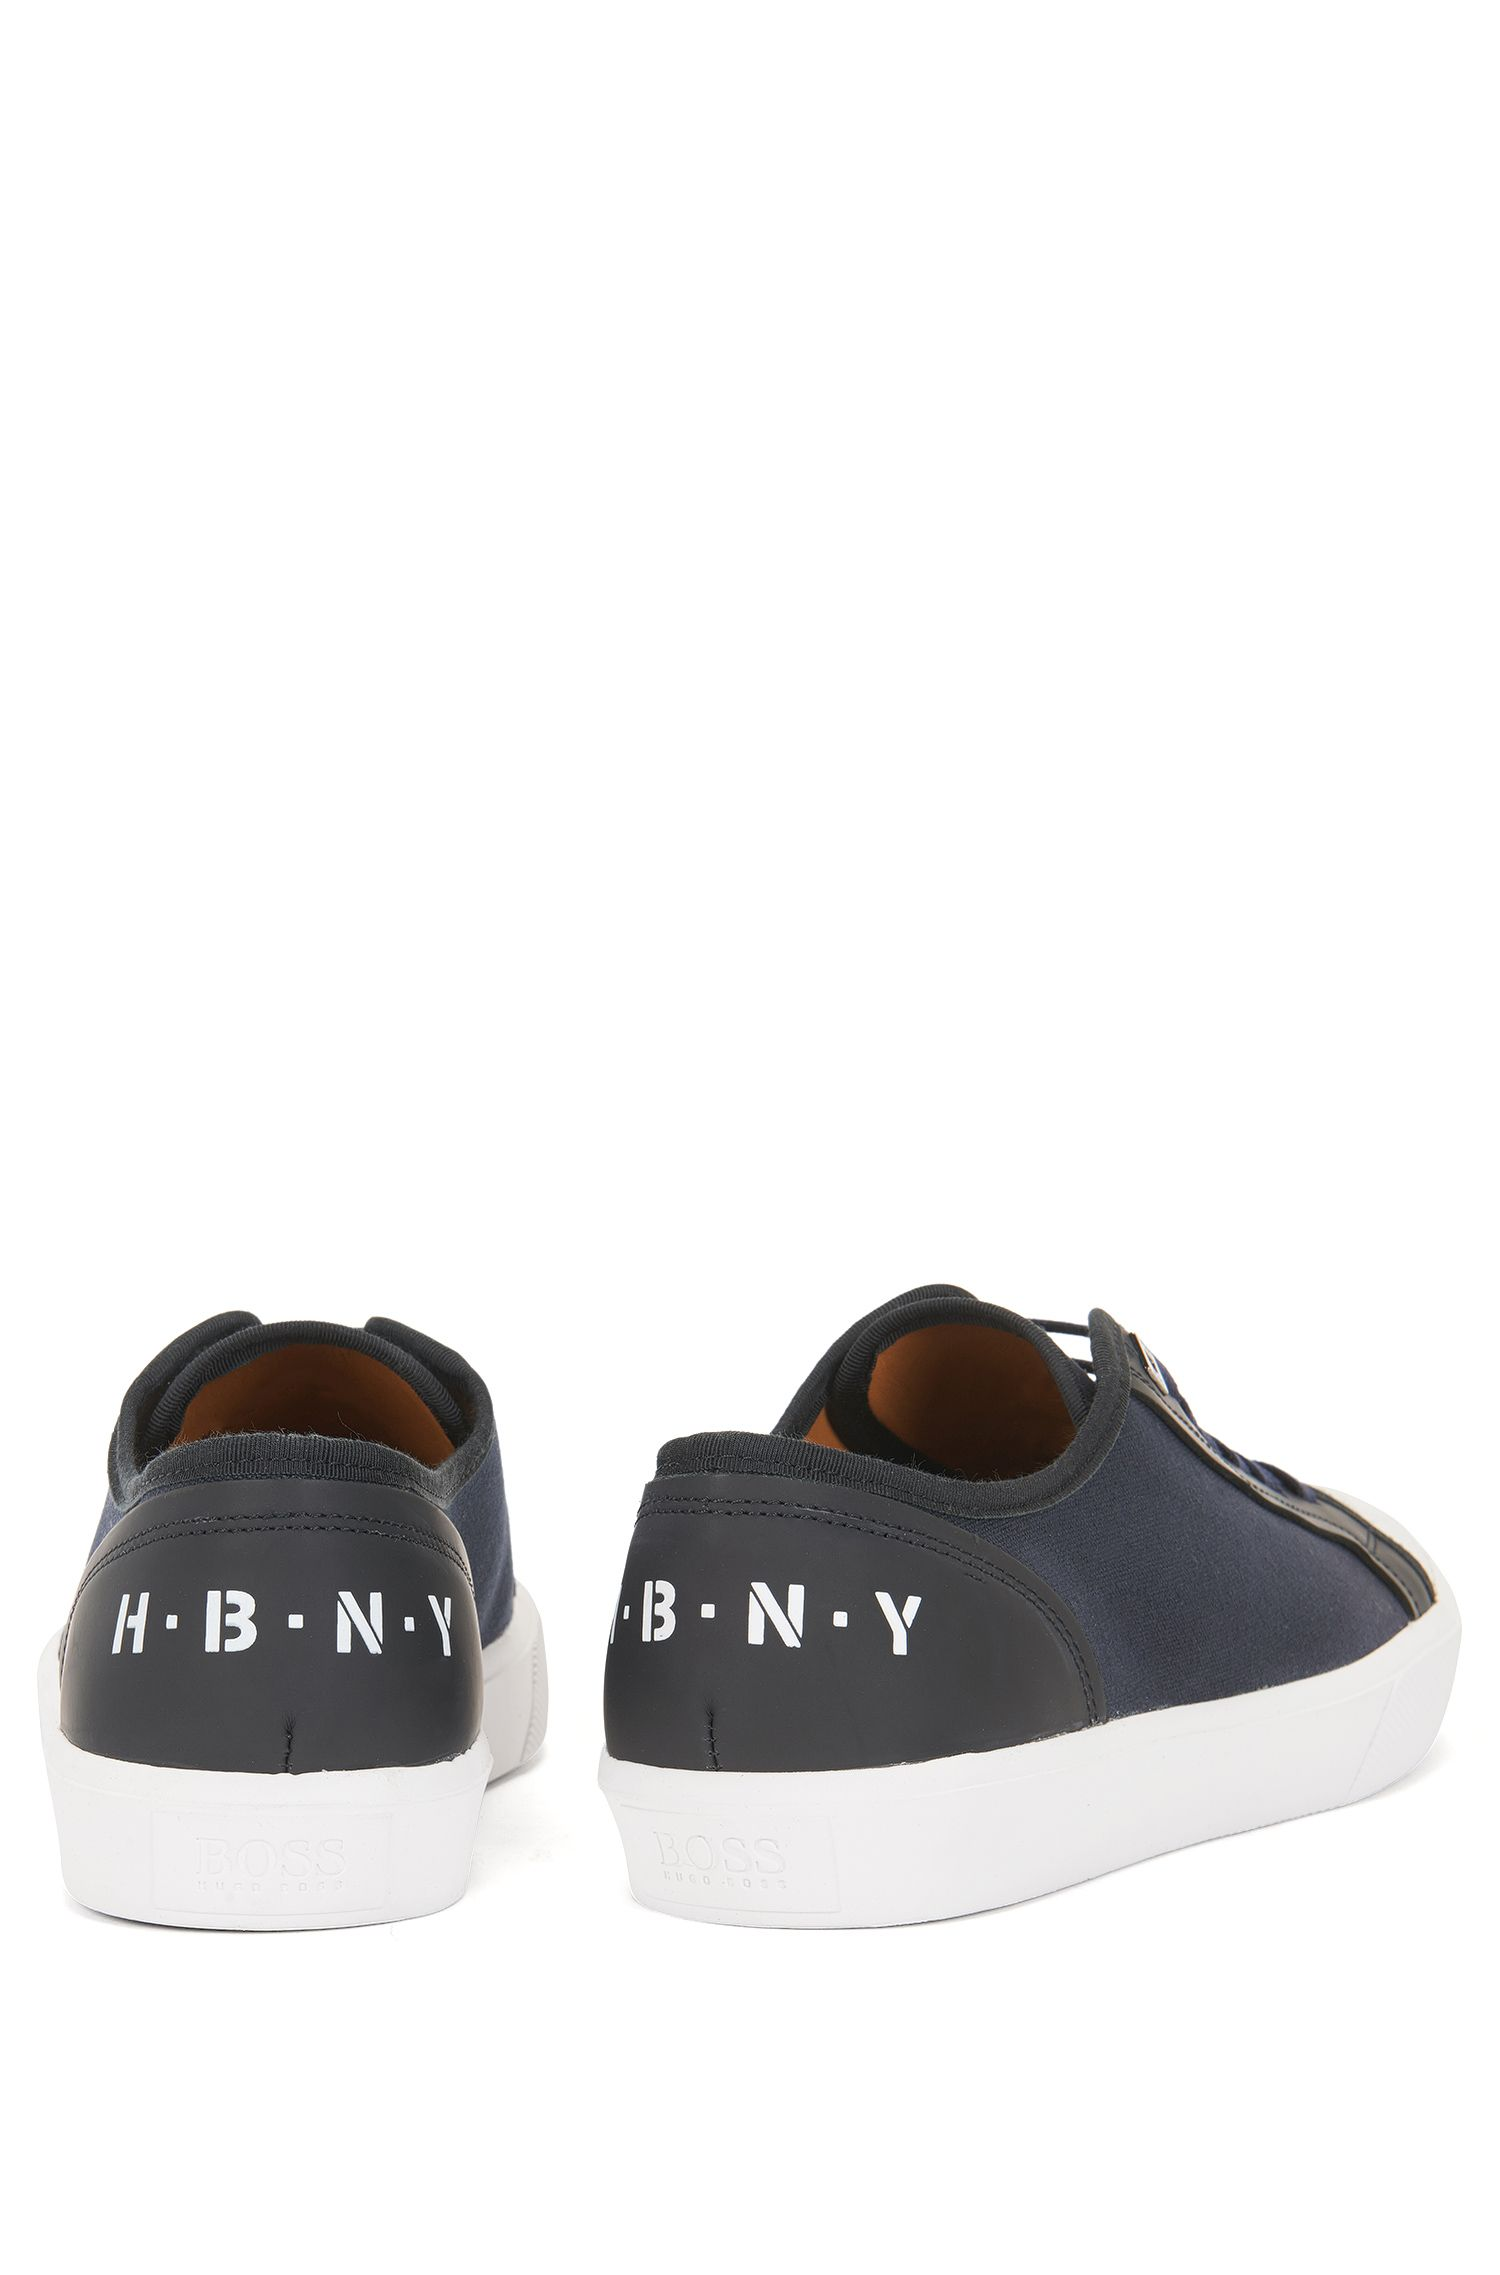 Baskets basses Runway Edition en coton et cuir